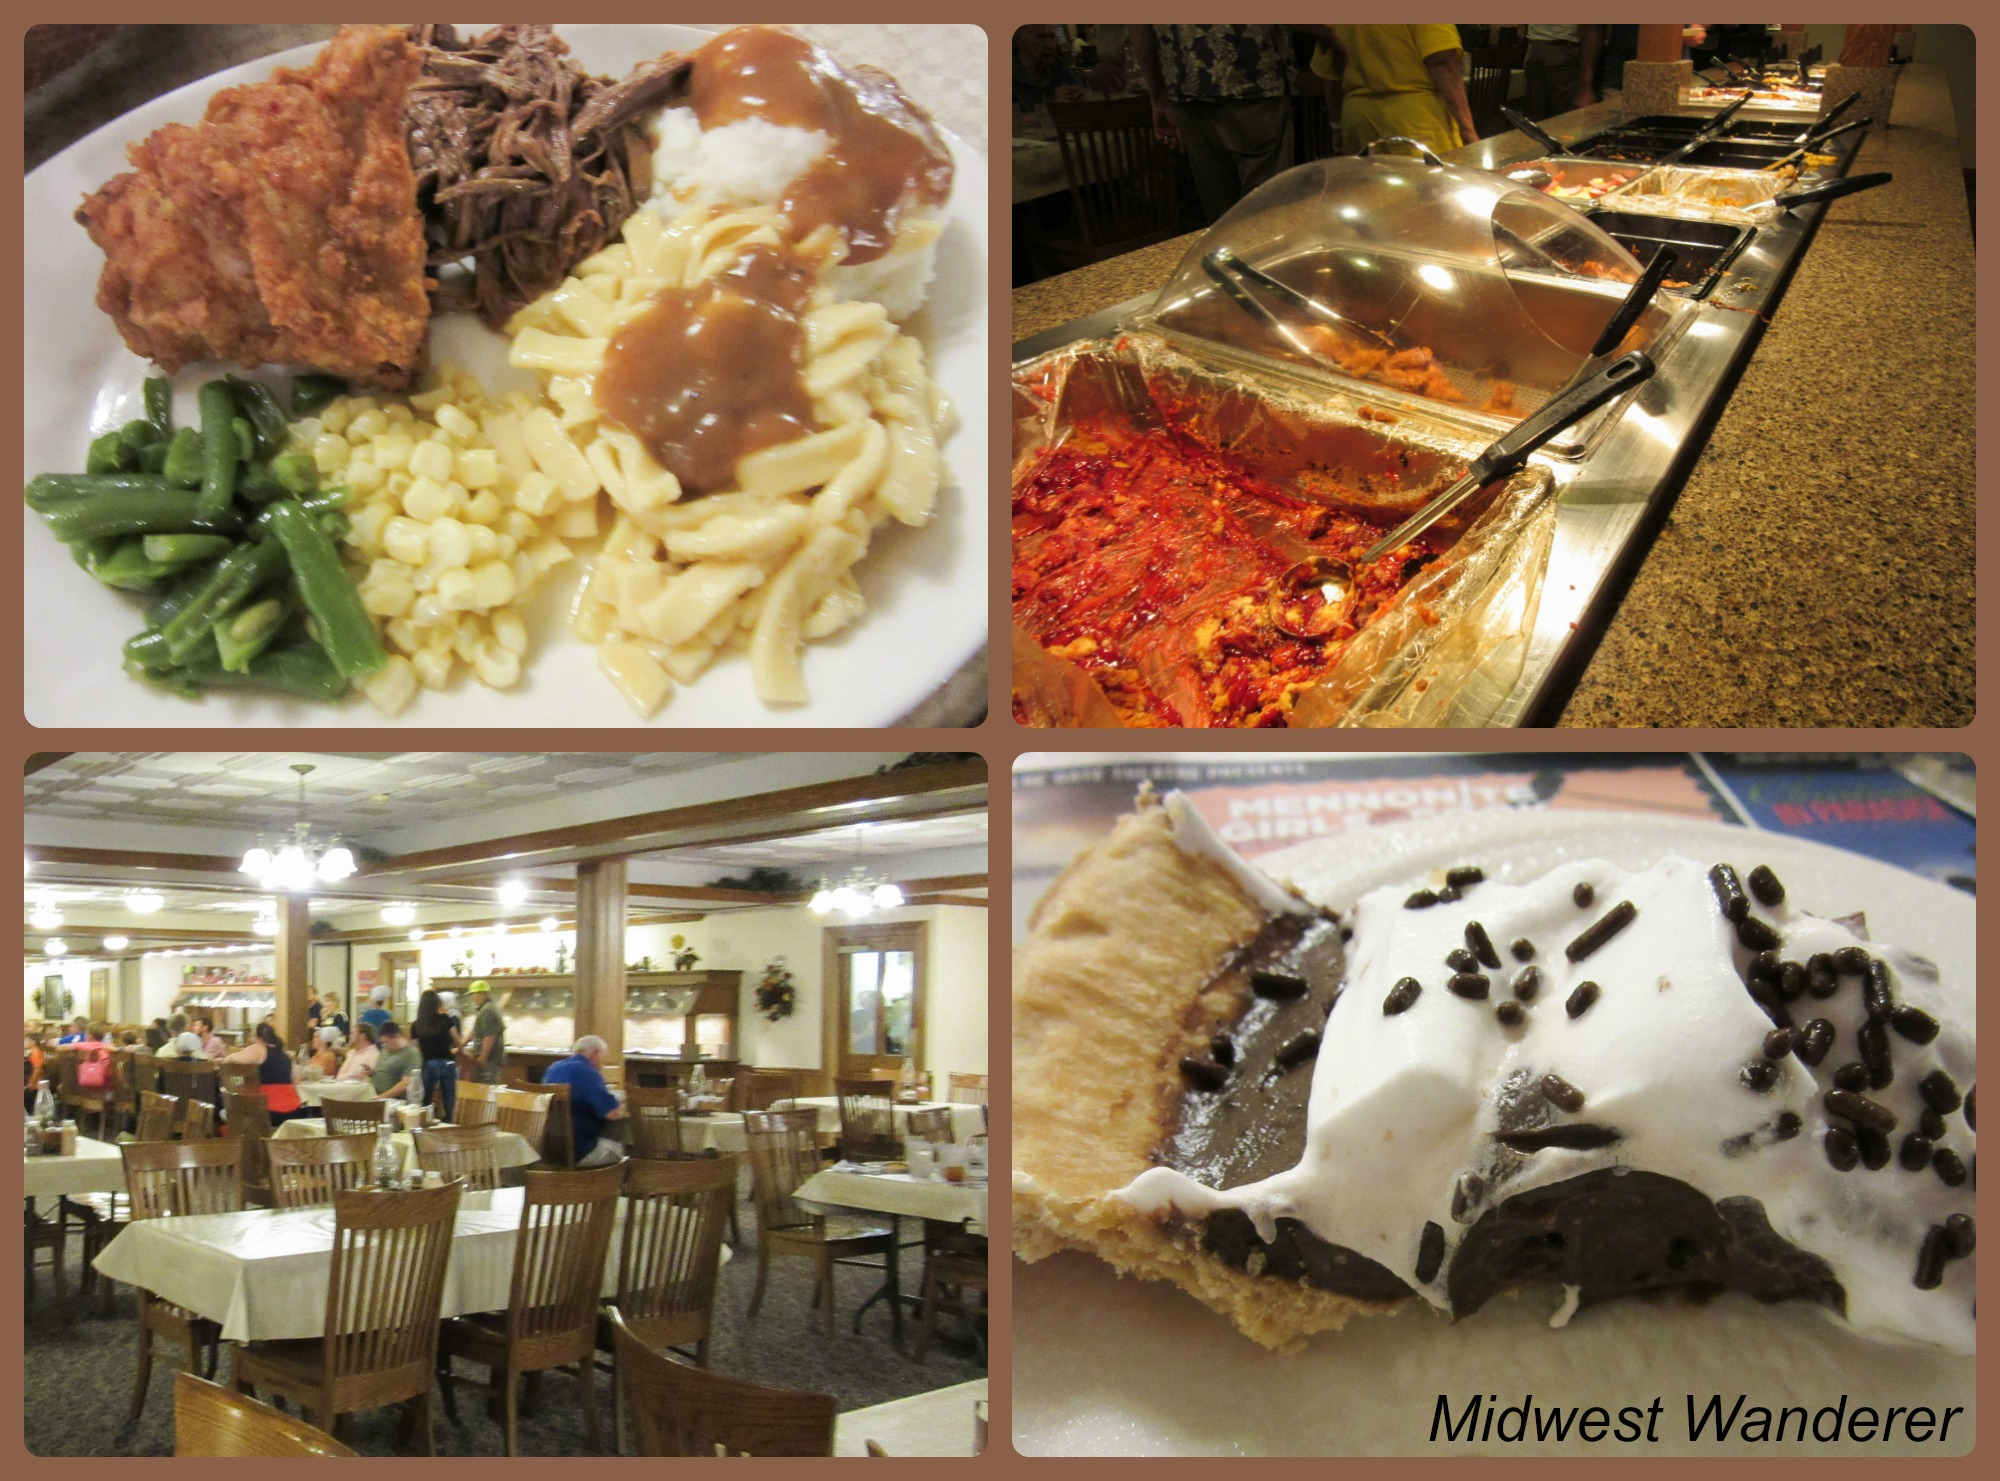 BlueGateRestaurantBuffet